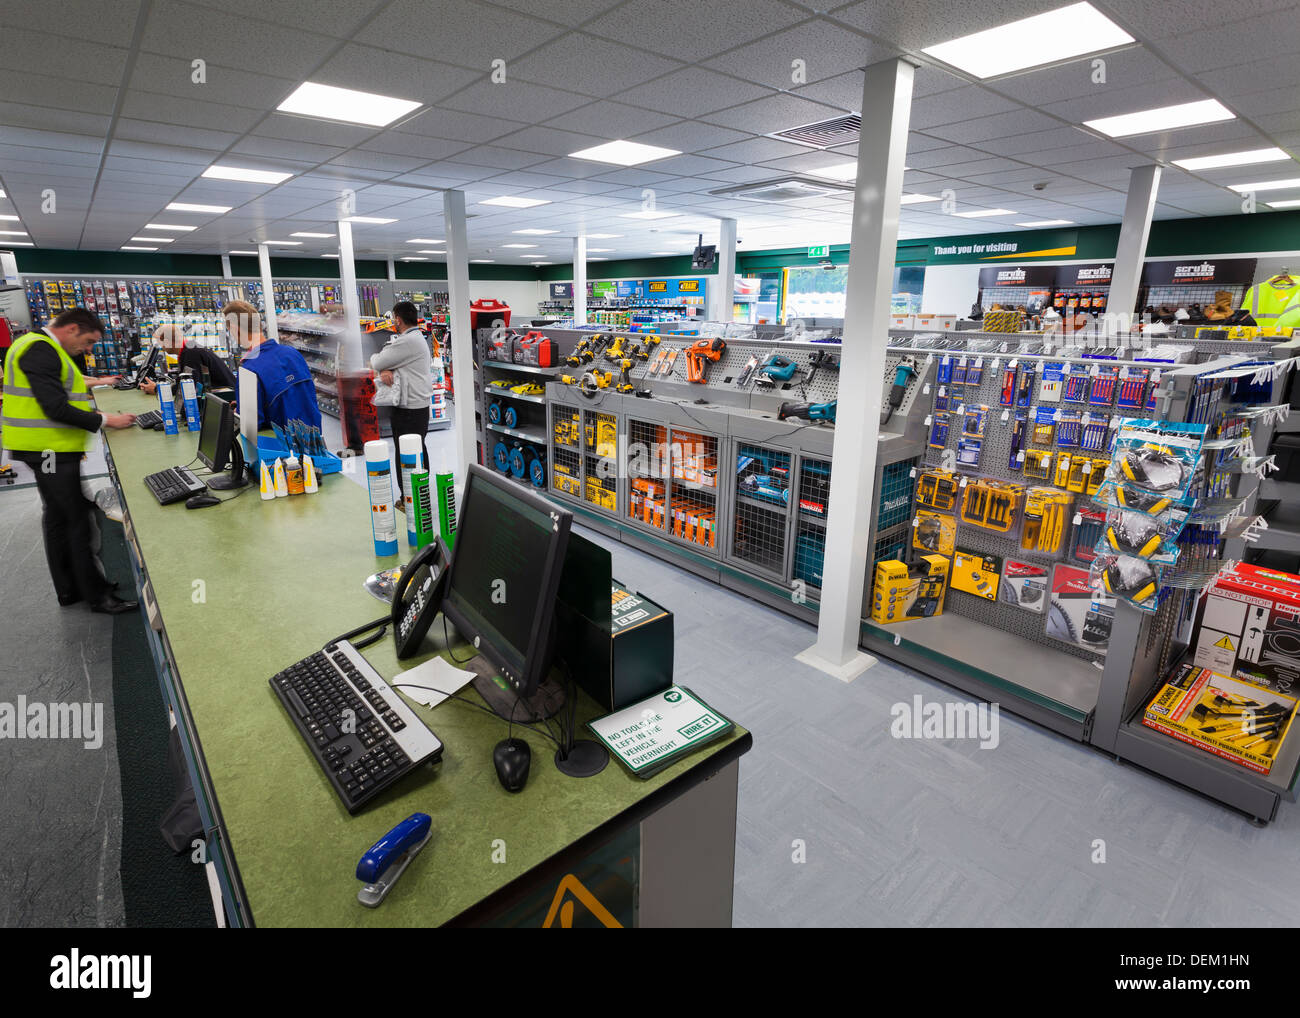 Builders merchants stock photos builders merchants stock images customers at sales counter in travis perkins builders merchants shop stock image baanklon Choice Image